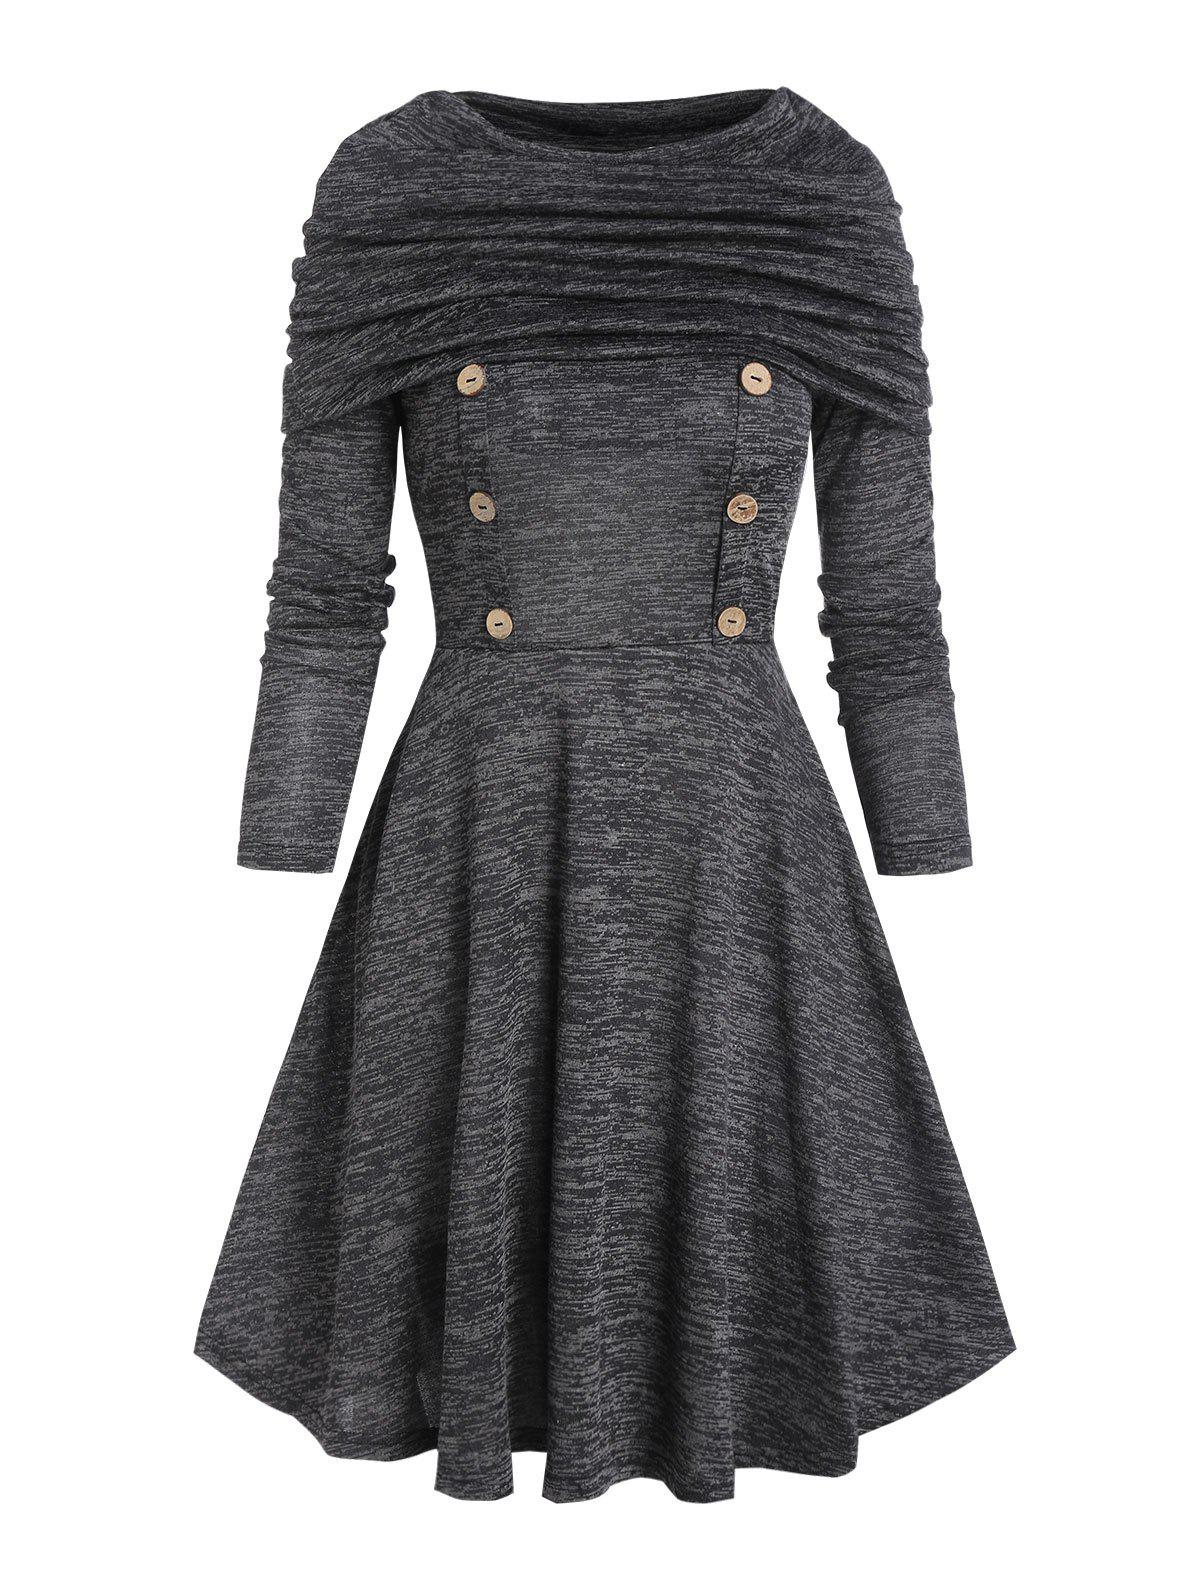 Foldover Button Mini A Line Dress - GRAY L